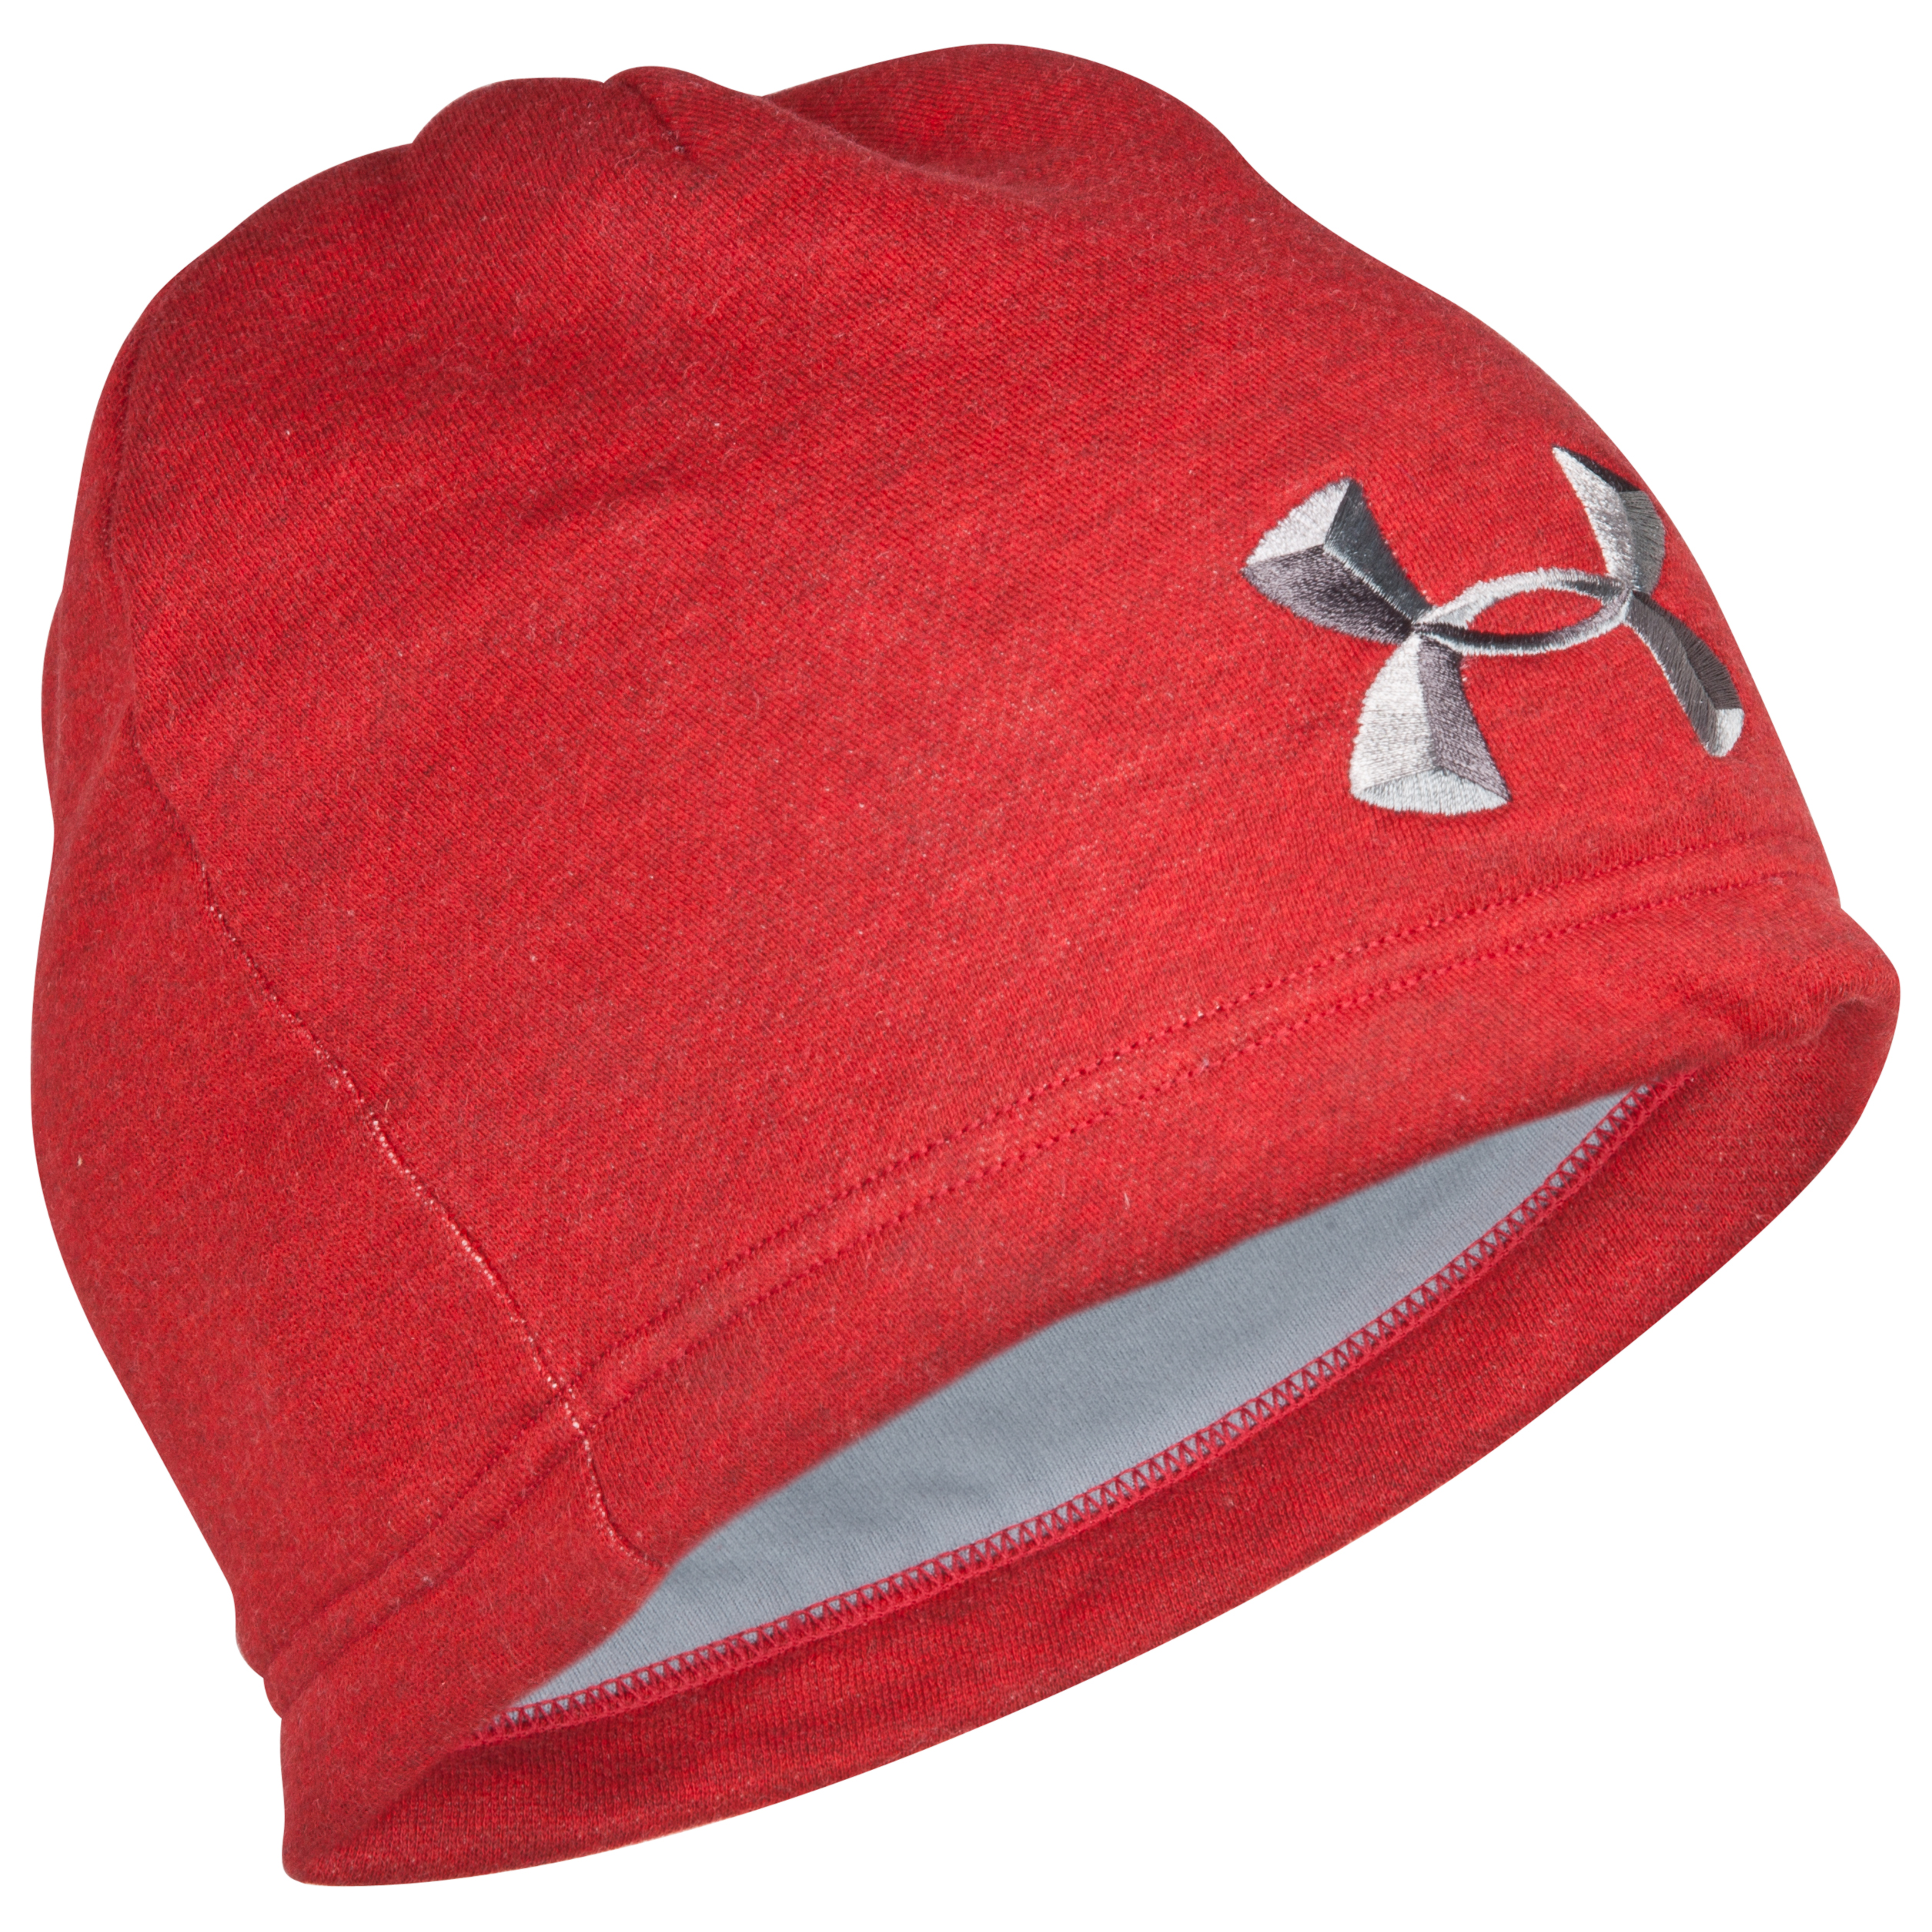 Under Armour Storm Beanie - Red/Steel